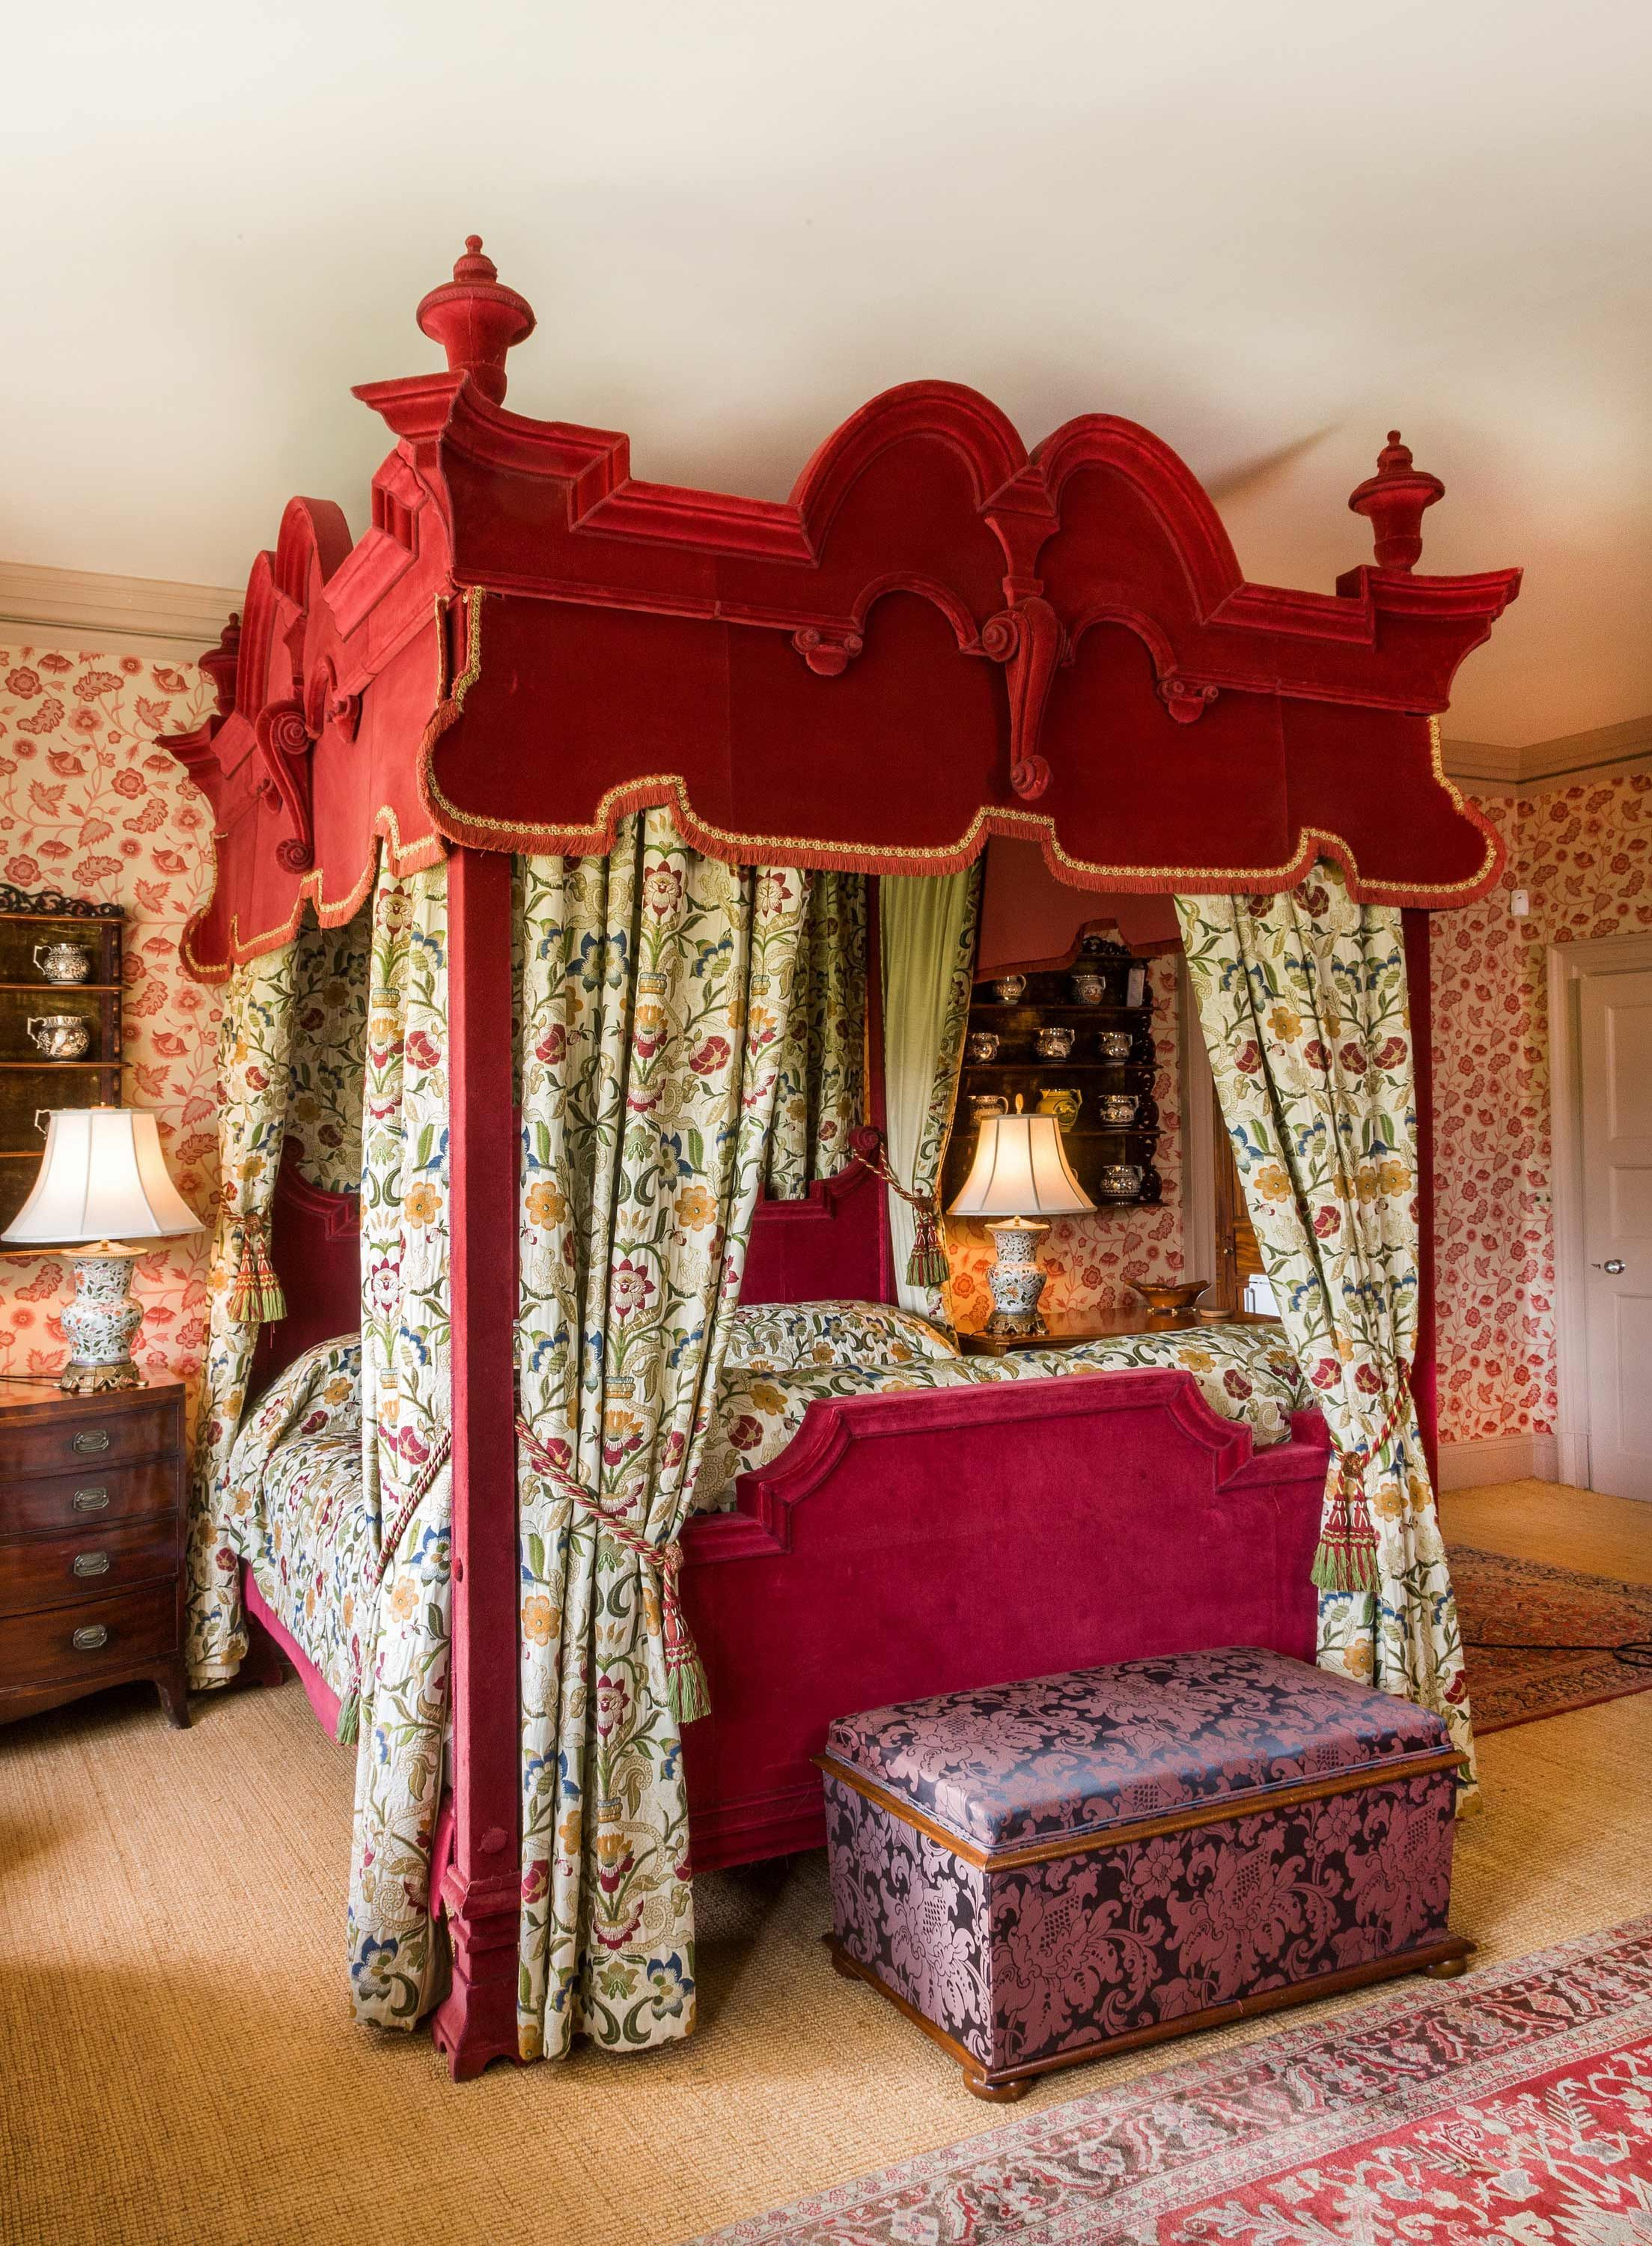 4 Poster Princess Bed Four Poster Bed Large 17th Century Style Entirely